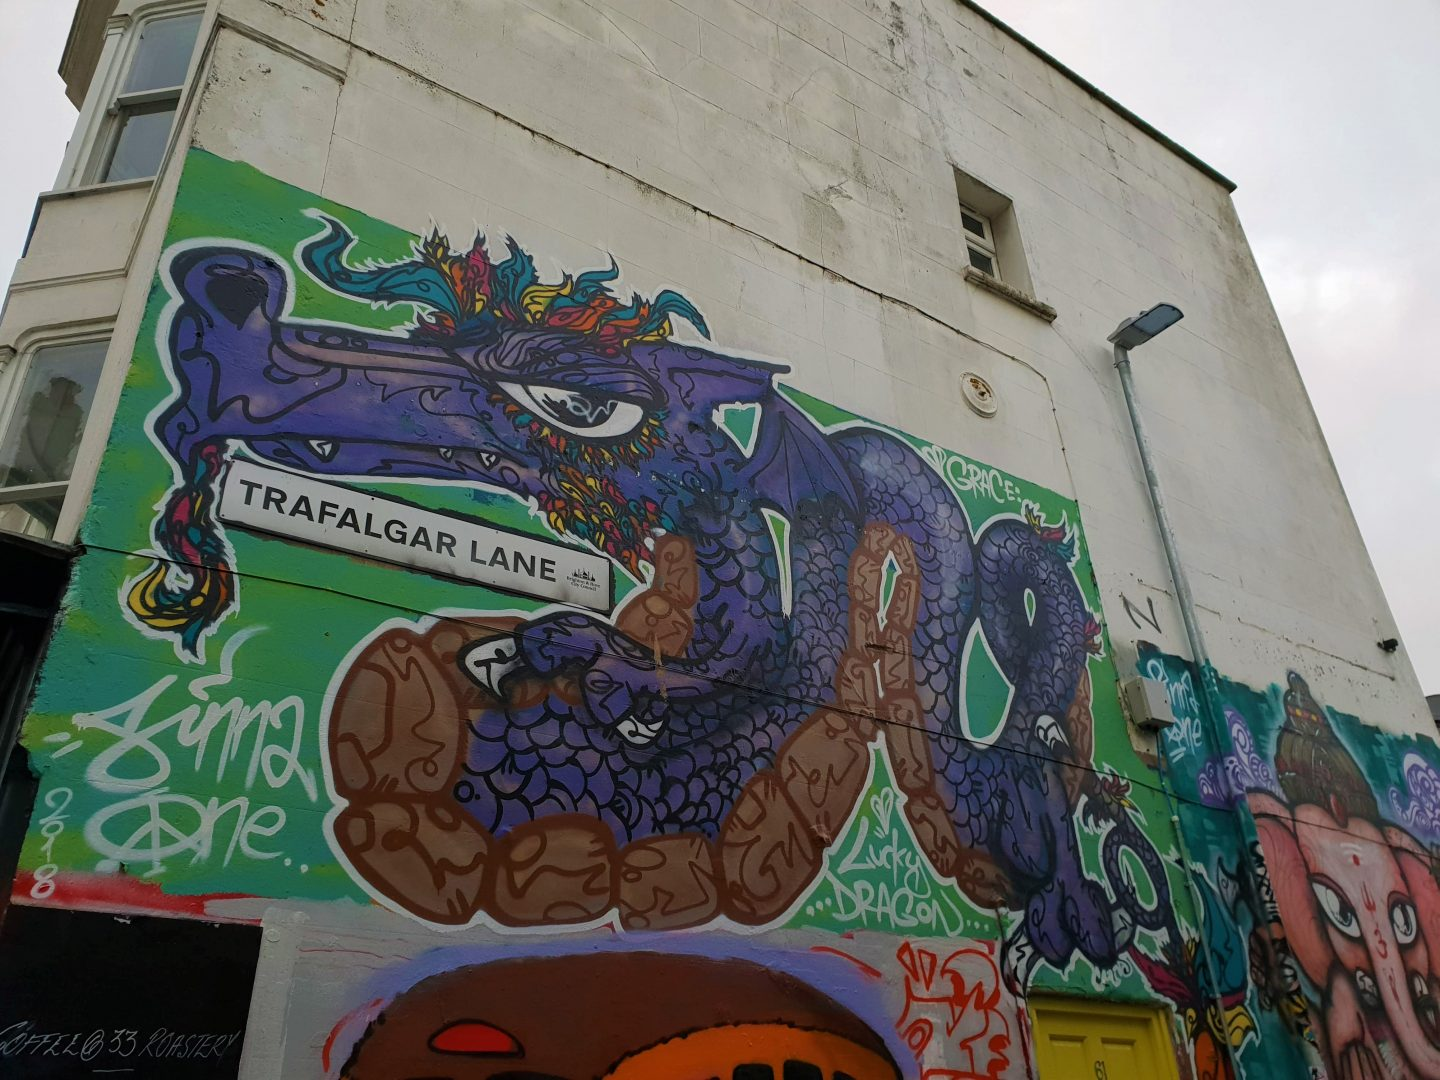 Graffiti artwork of a large purple and orange dragon on a green background around the sign for Trafalgar Lane Brighton